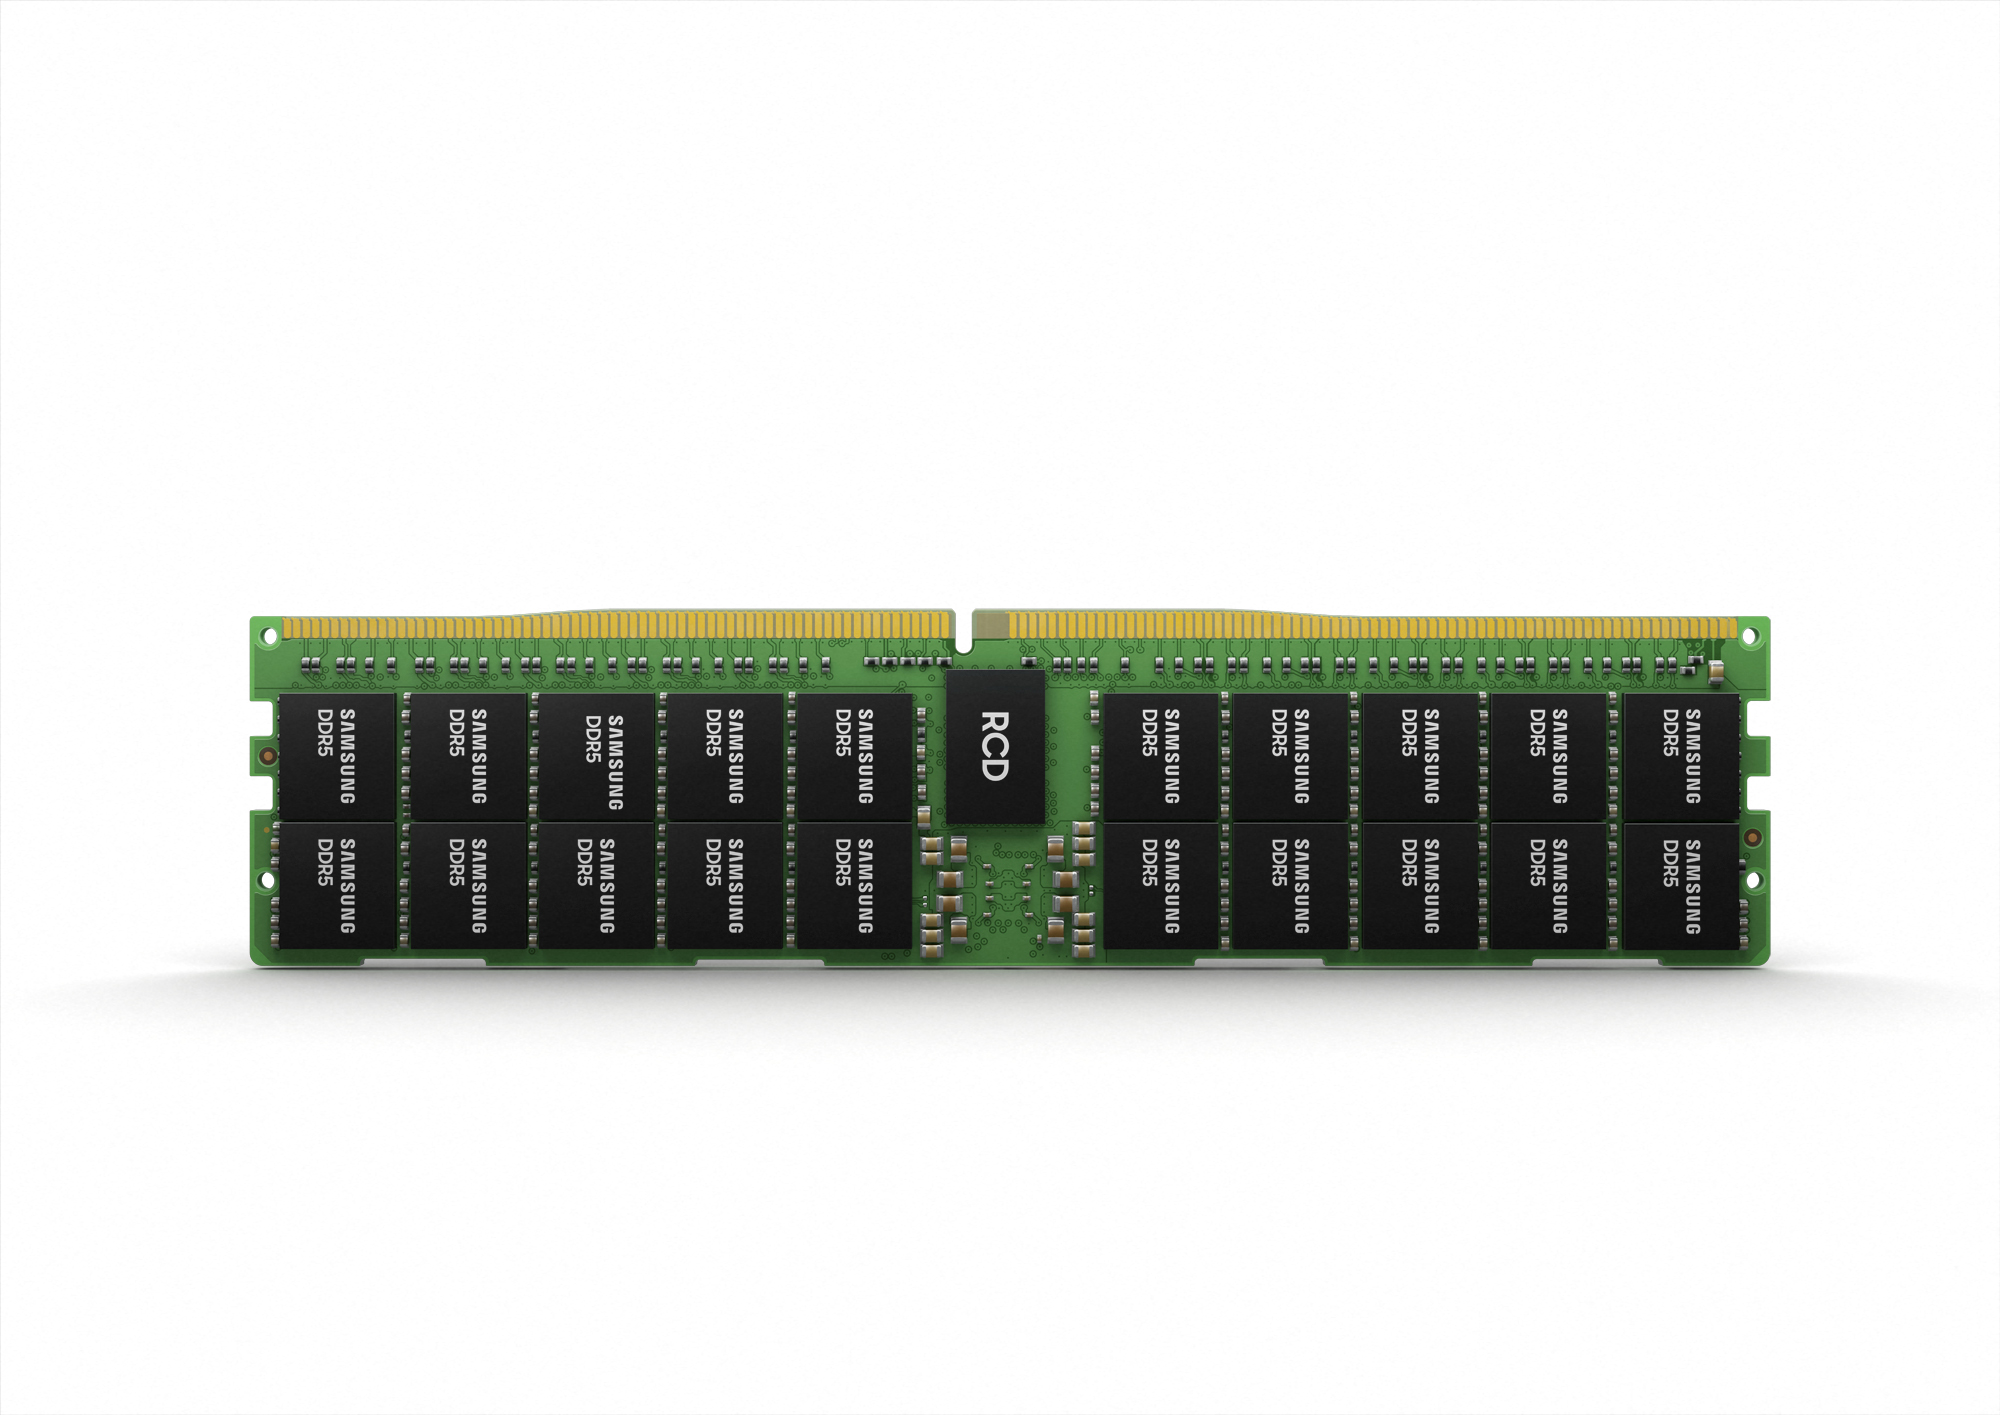 Samsung Develops Industry's First HKMG-Based DDR5 Memory